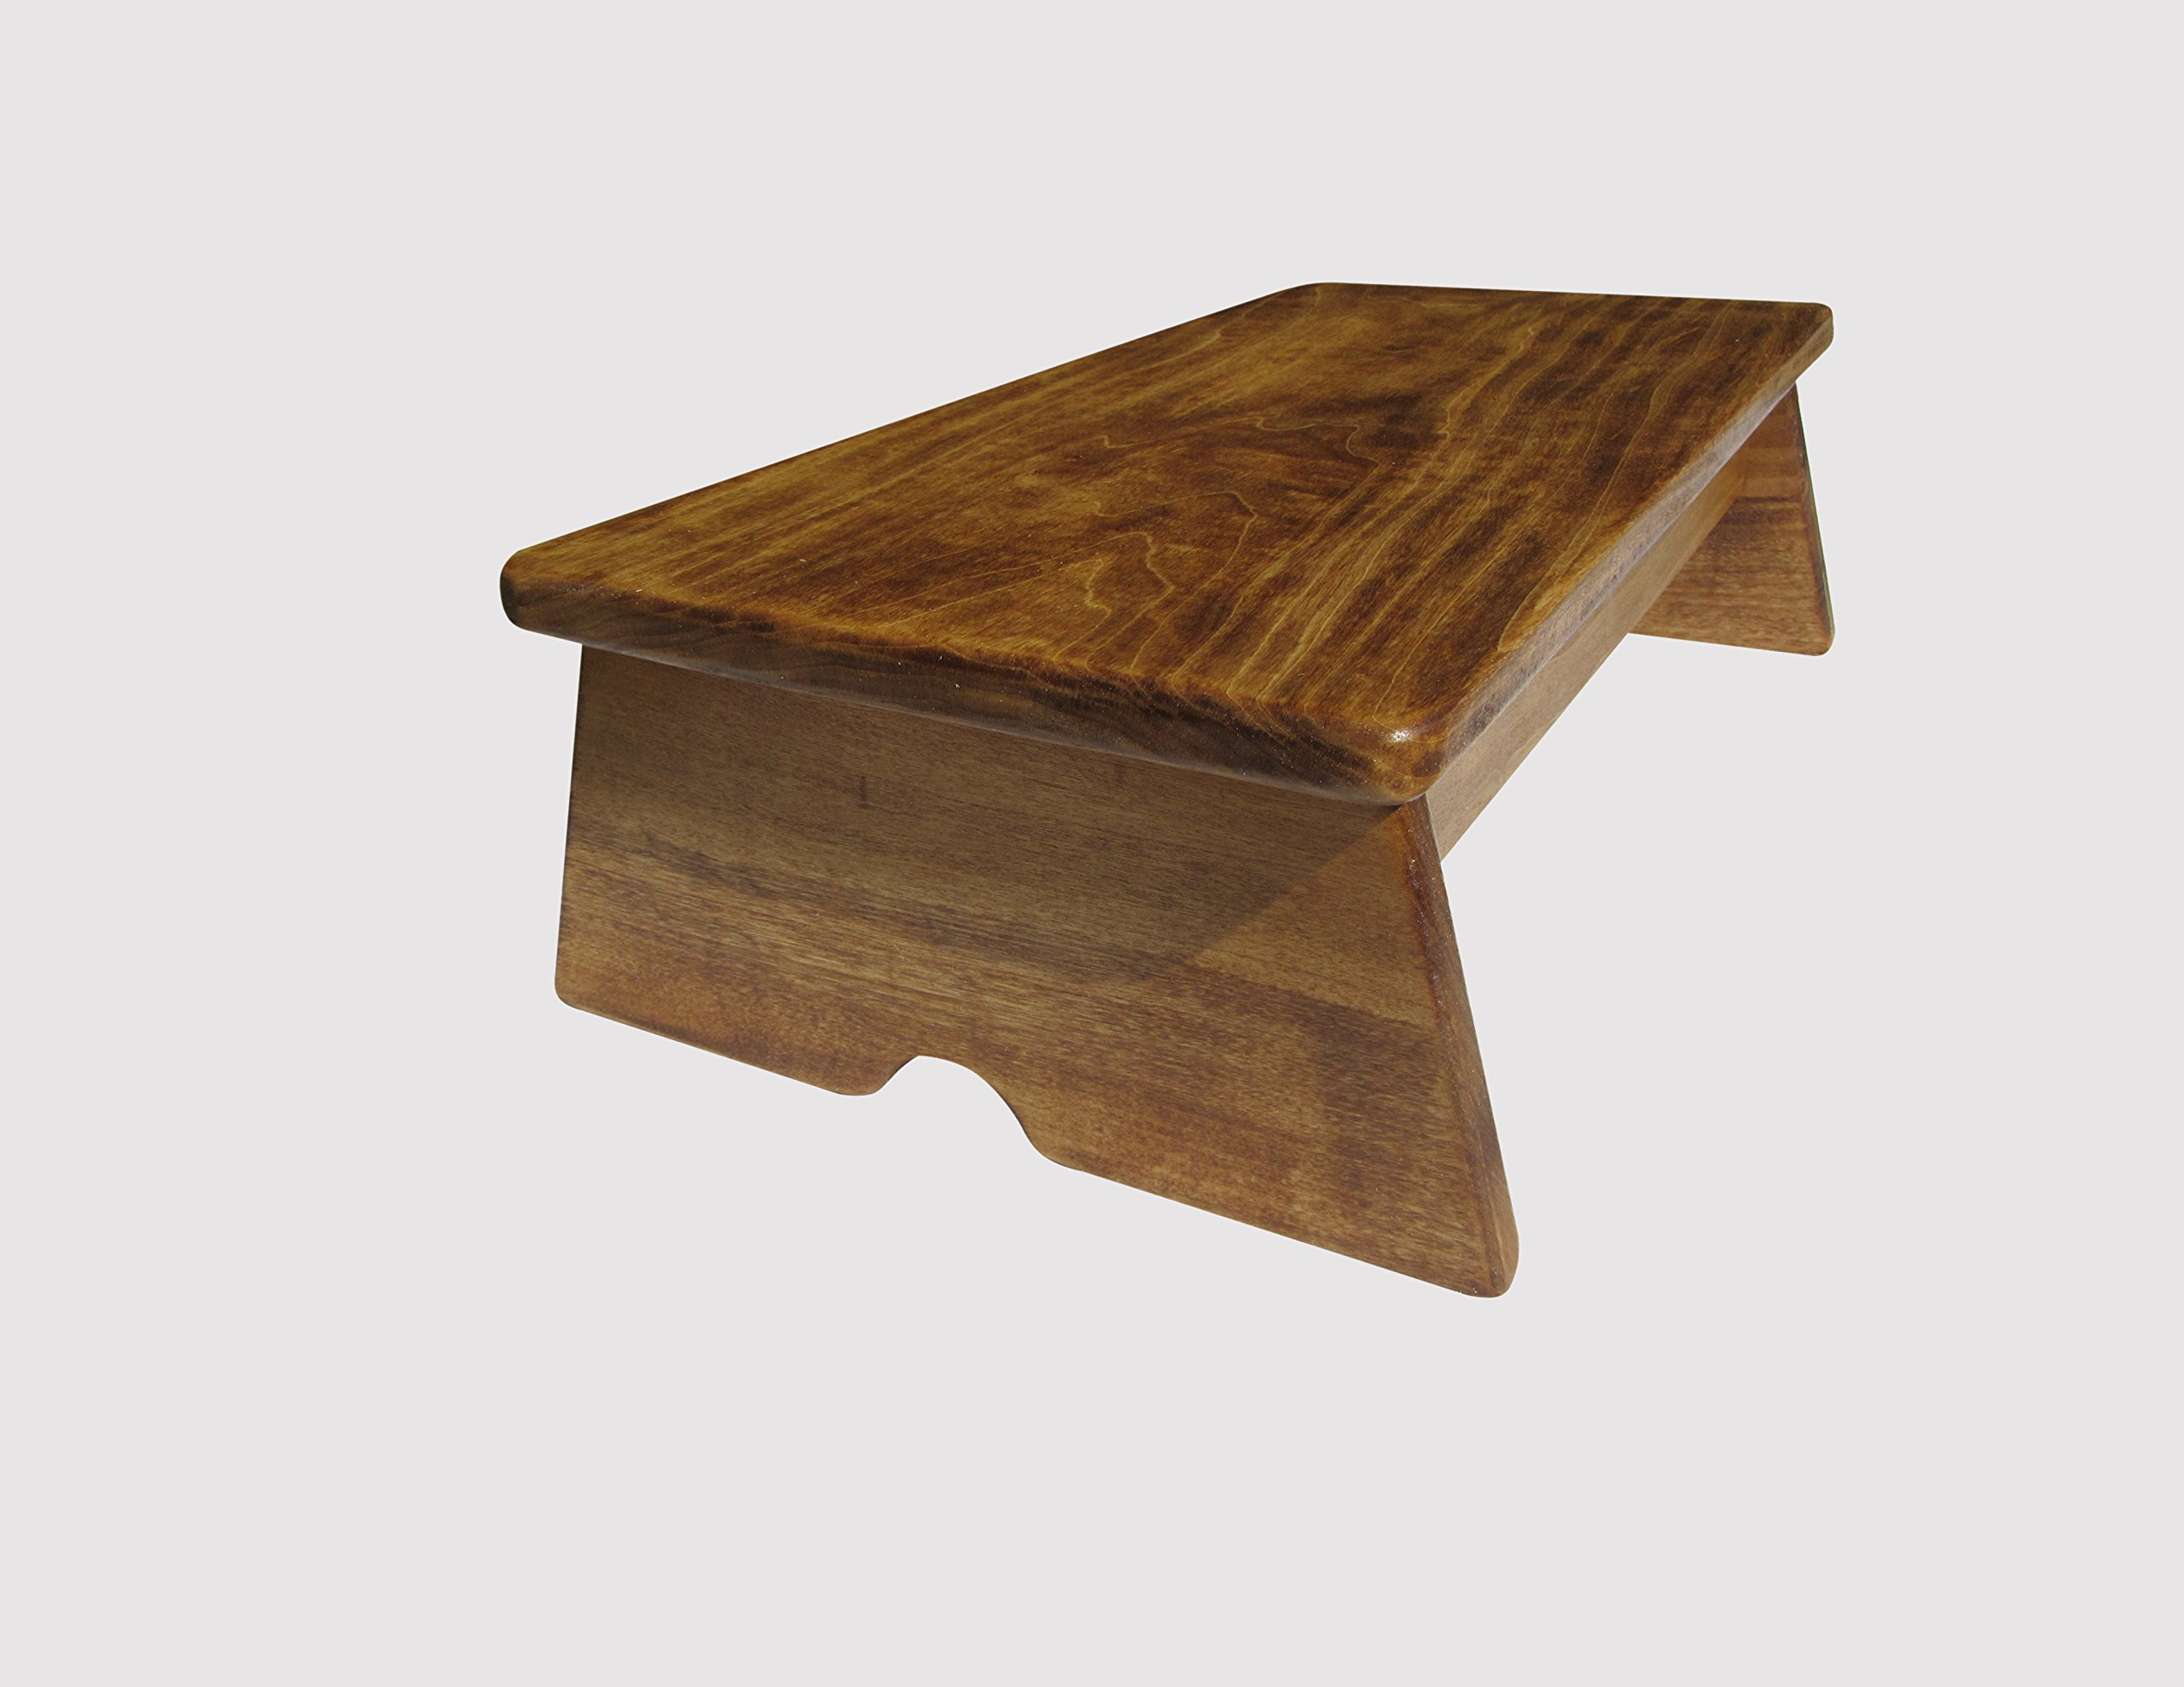 Mini Stability Bedside Foot Stool: 6'' Tall (Made in the USA) (Maple Stain)